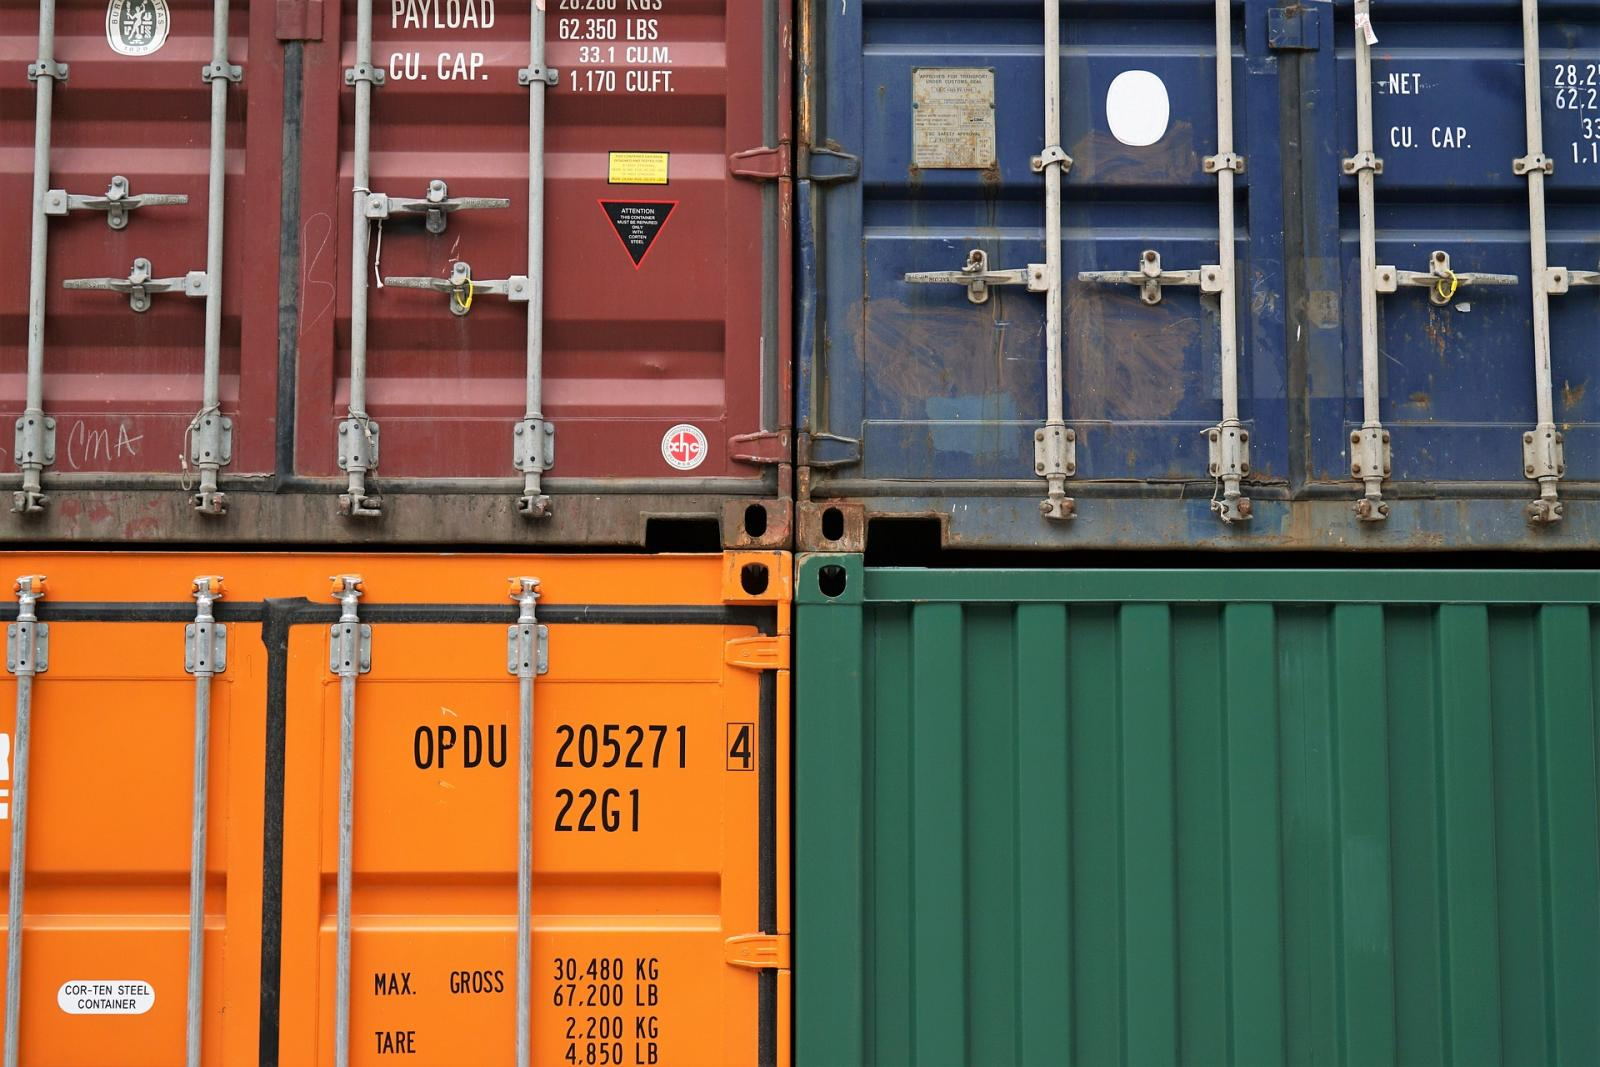 Shipping containers. Photo credit: Pixabay